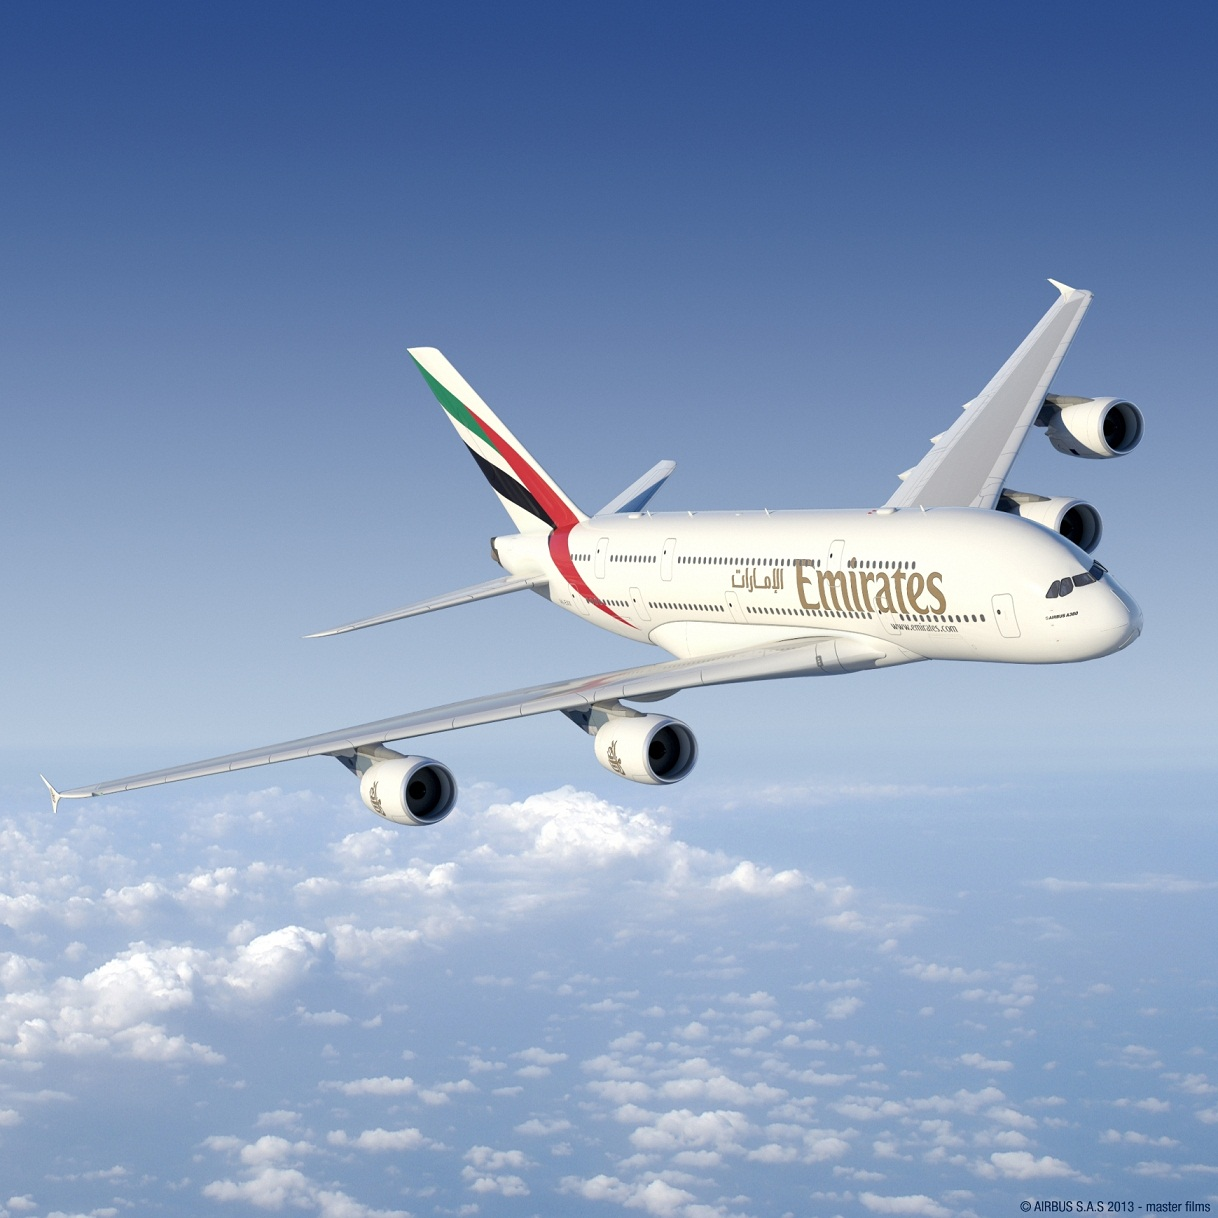 http://highend-traveller.com/emirates-extends-baggage-allowance-to-dubai-shopping-festival-shoppers/